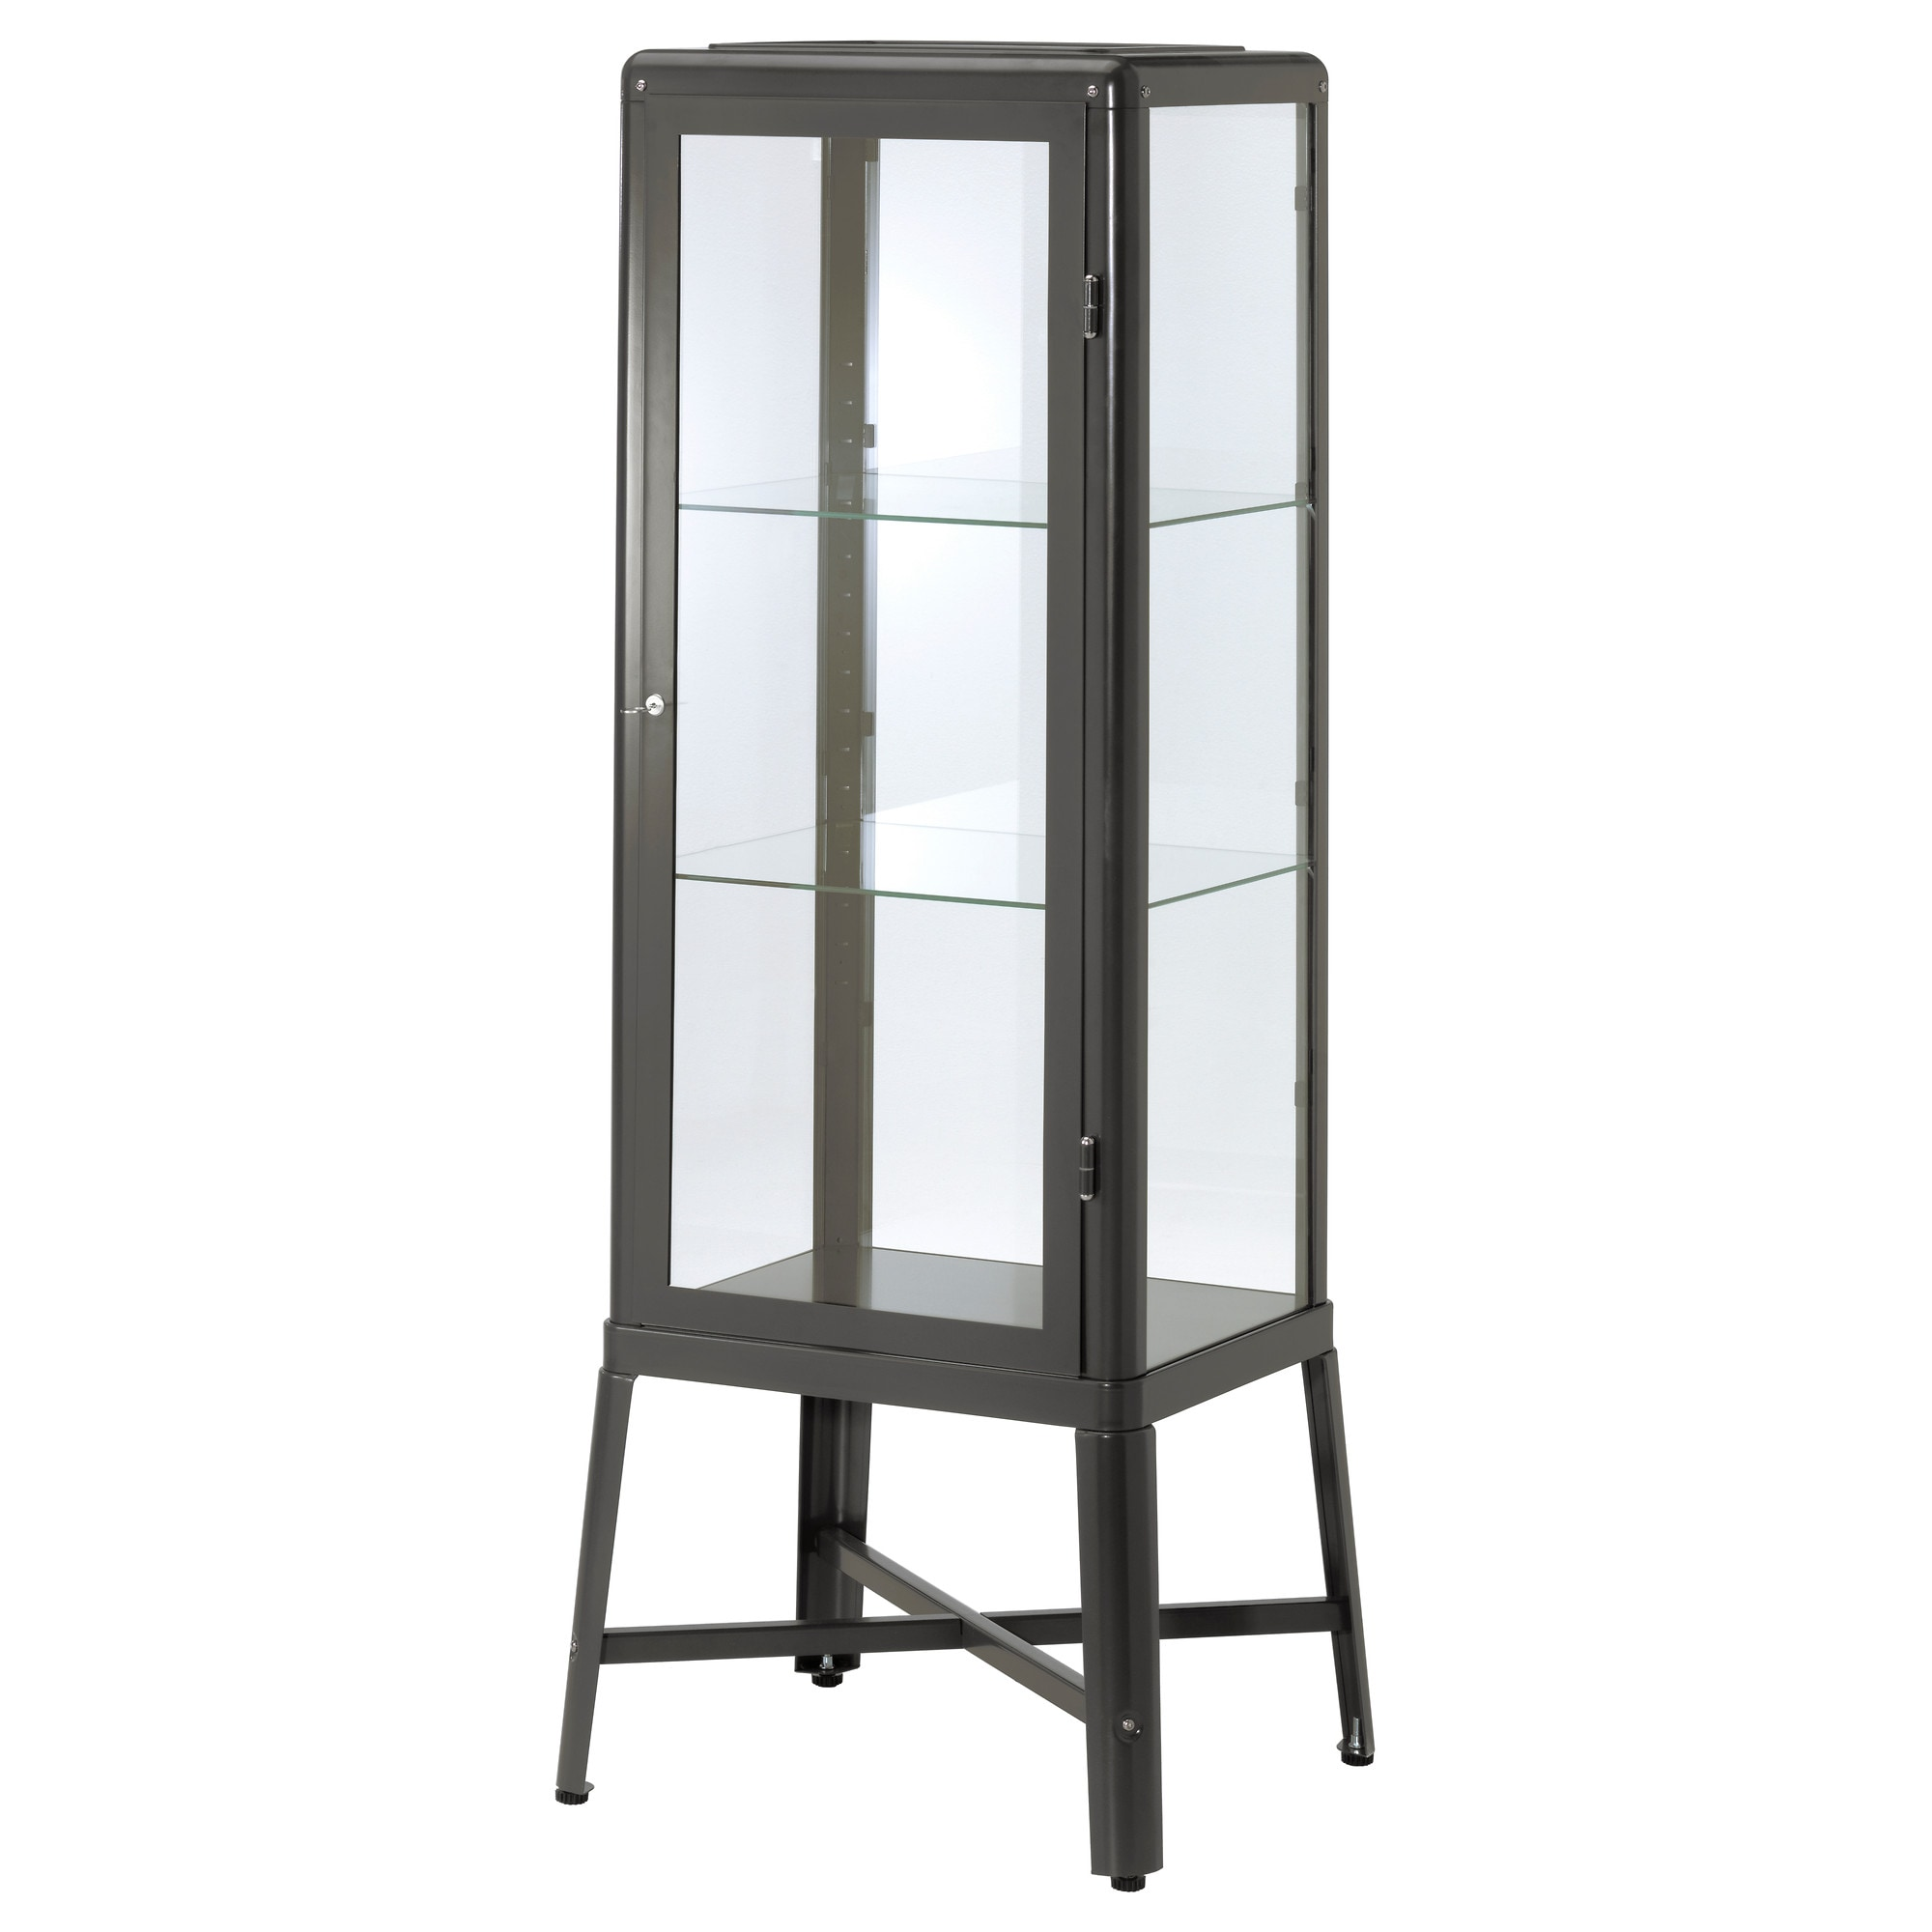 Fabrikr glass door cabinet beige ikea eventelaan Choice Image